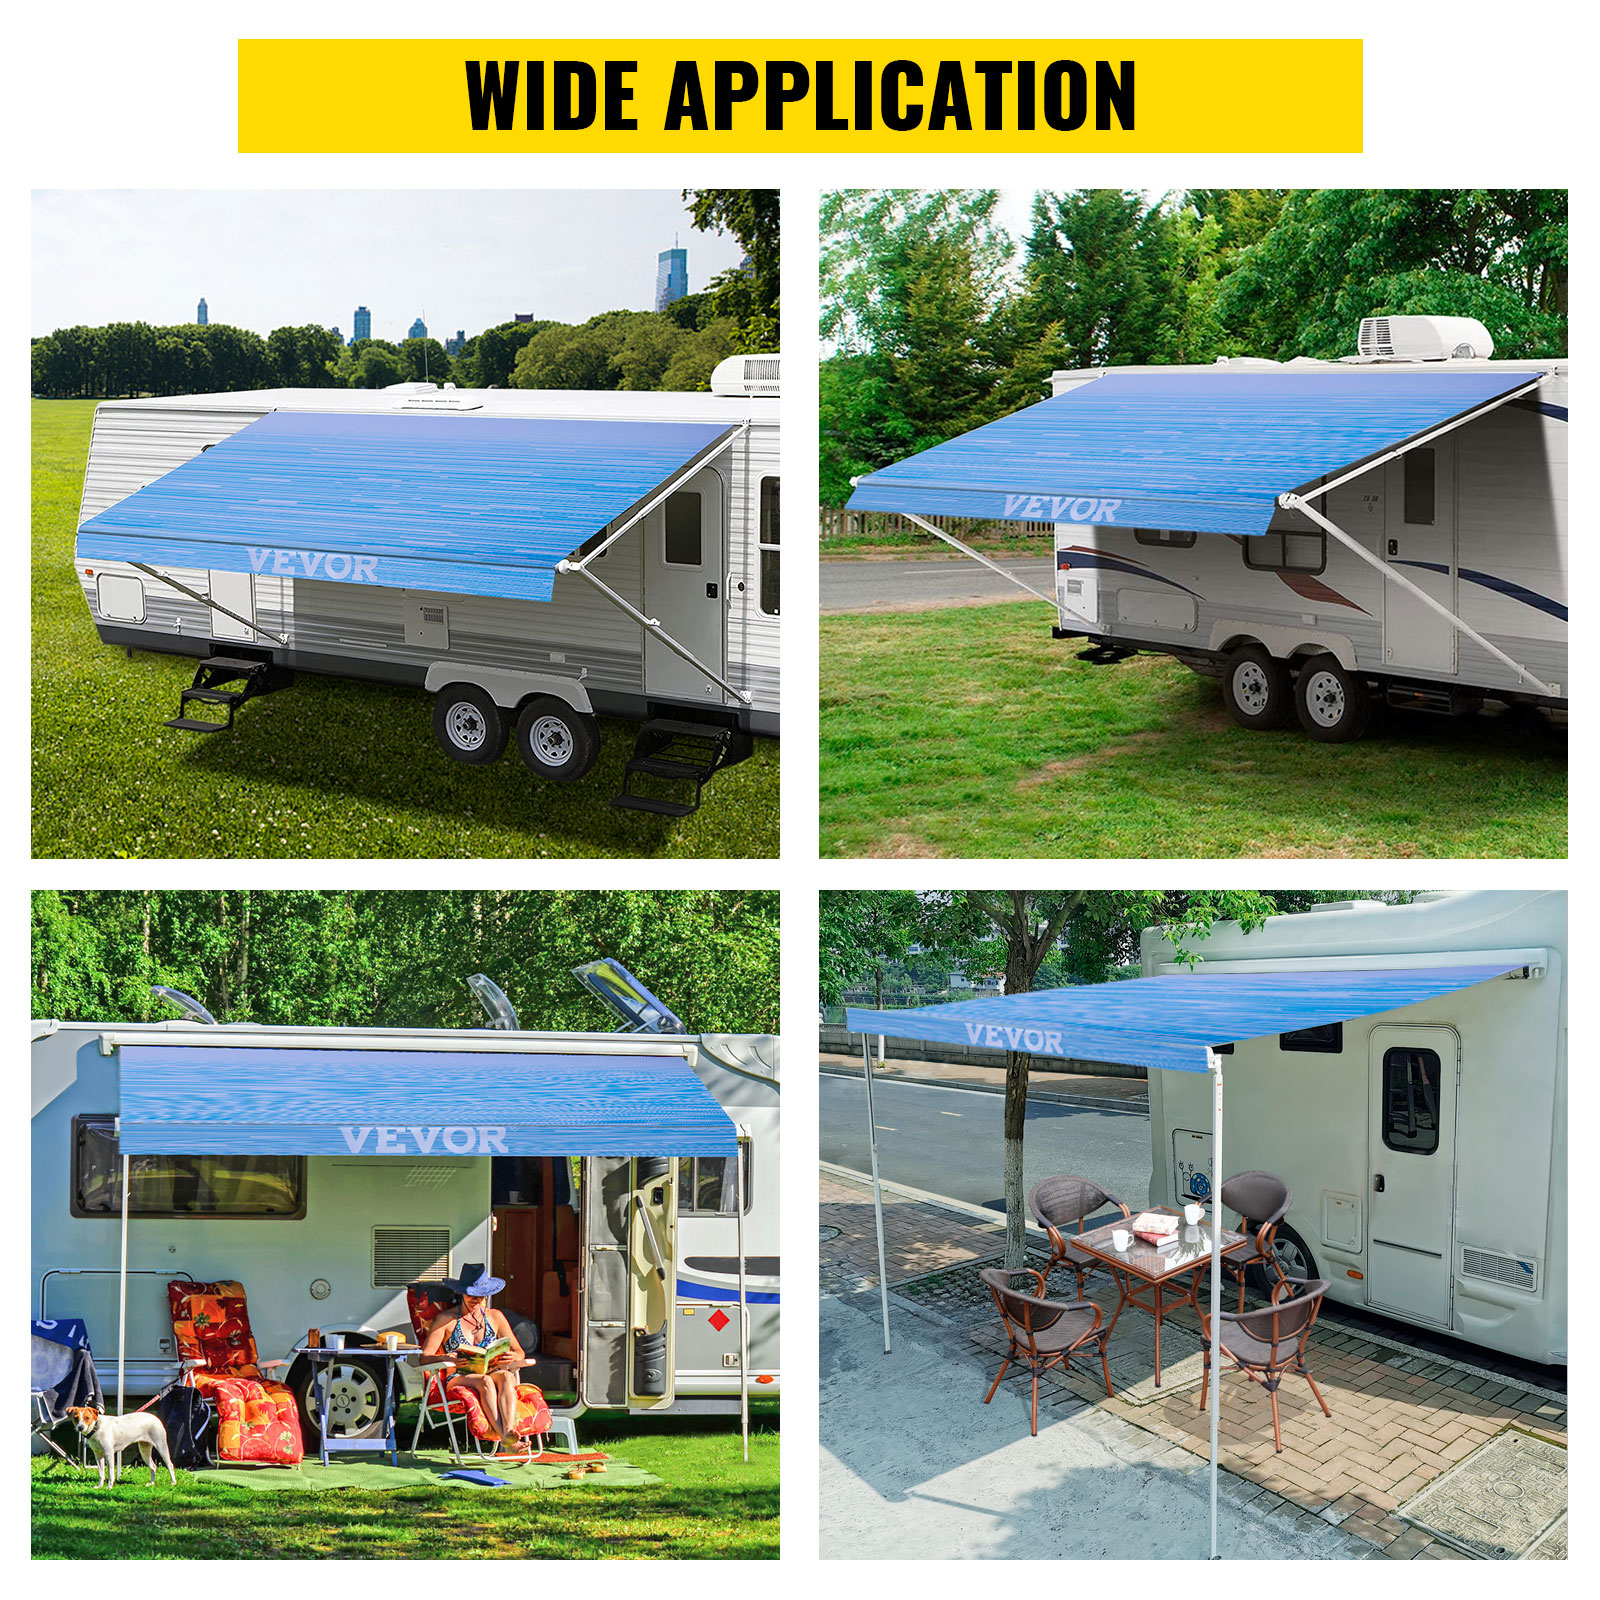 Awning Replacement Fabric Canopy 15'-20' FT For RV Camper ...